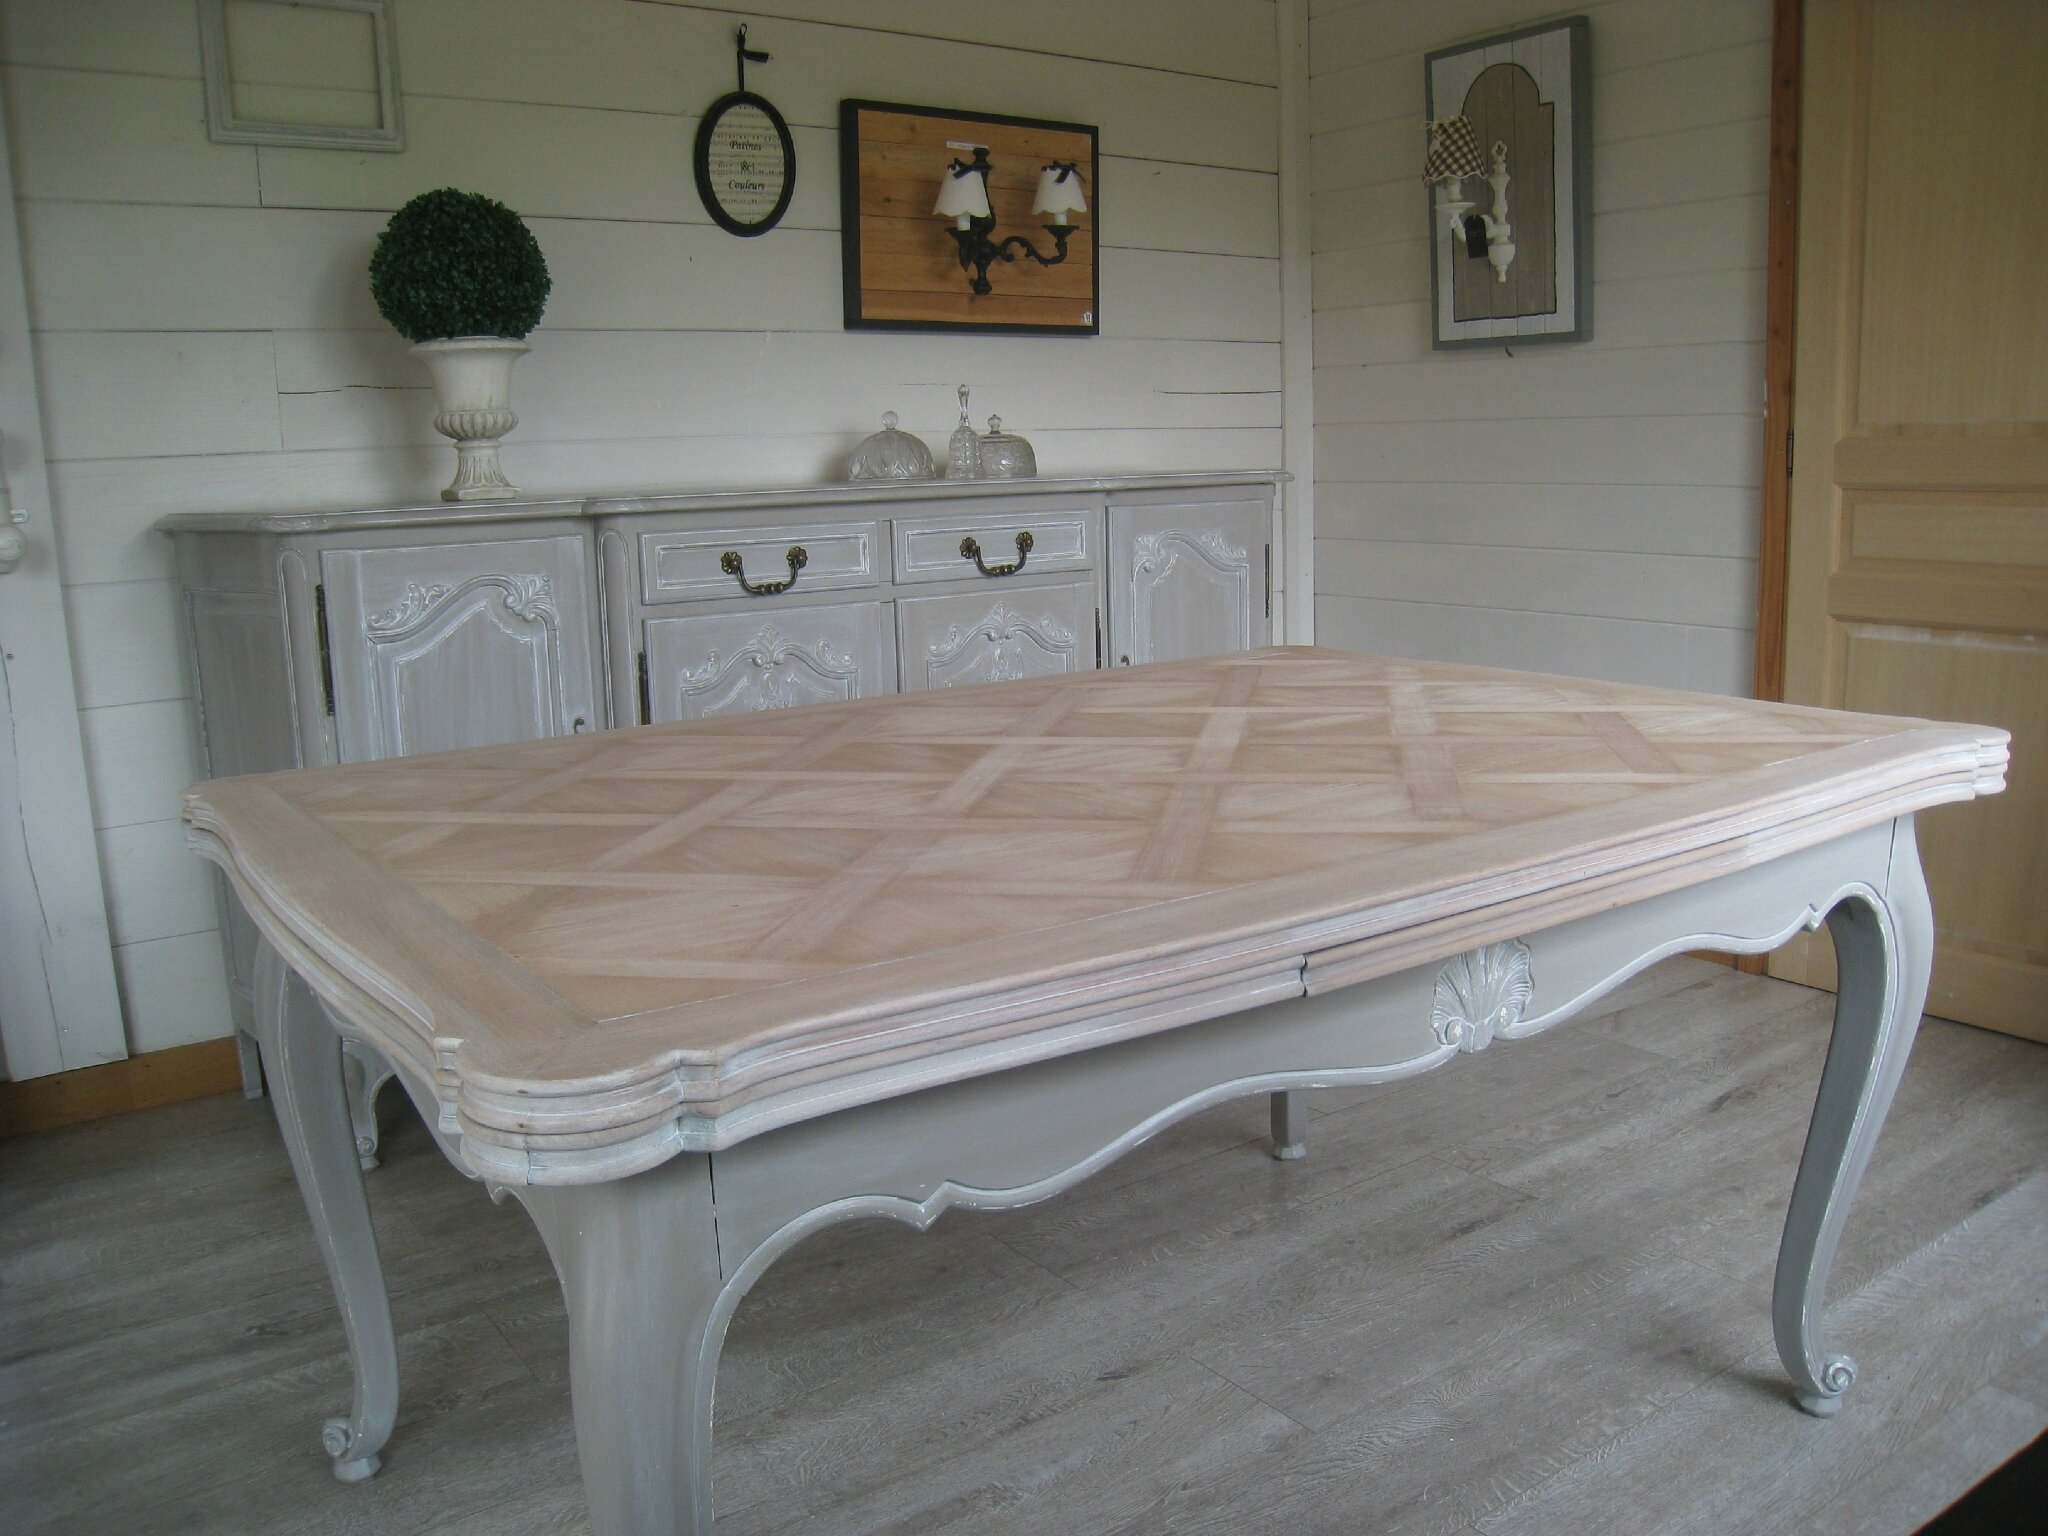 Bahut r gence relook et sa table assortie 2 patines - Customiser une table en bois ...